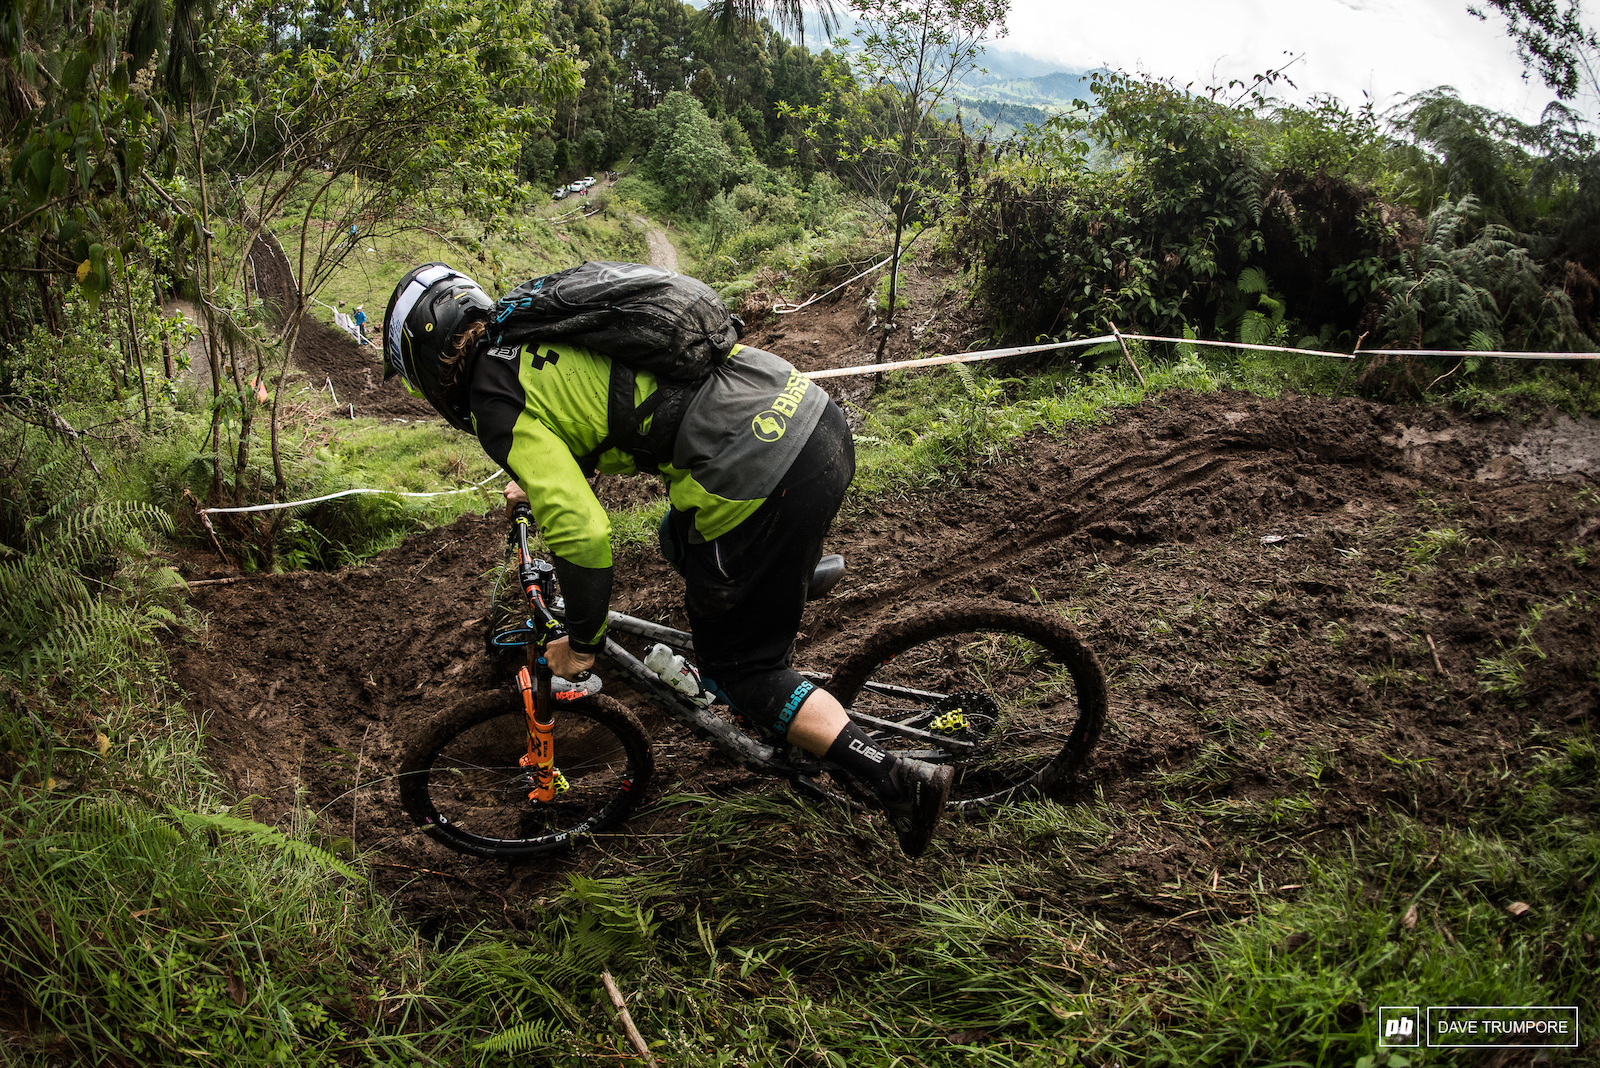 Matt Walker cuts to the inside line while trying to avoid the monster ruts on stage 2.